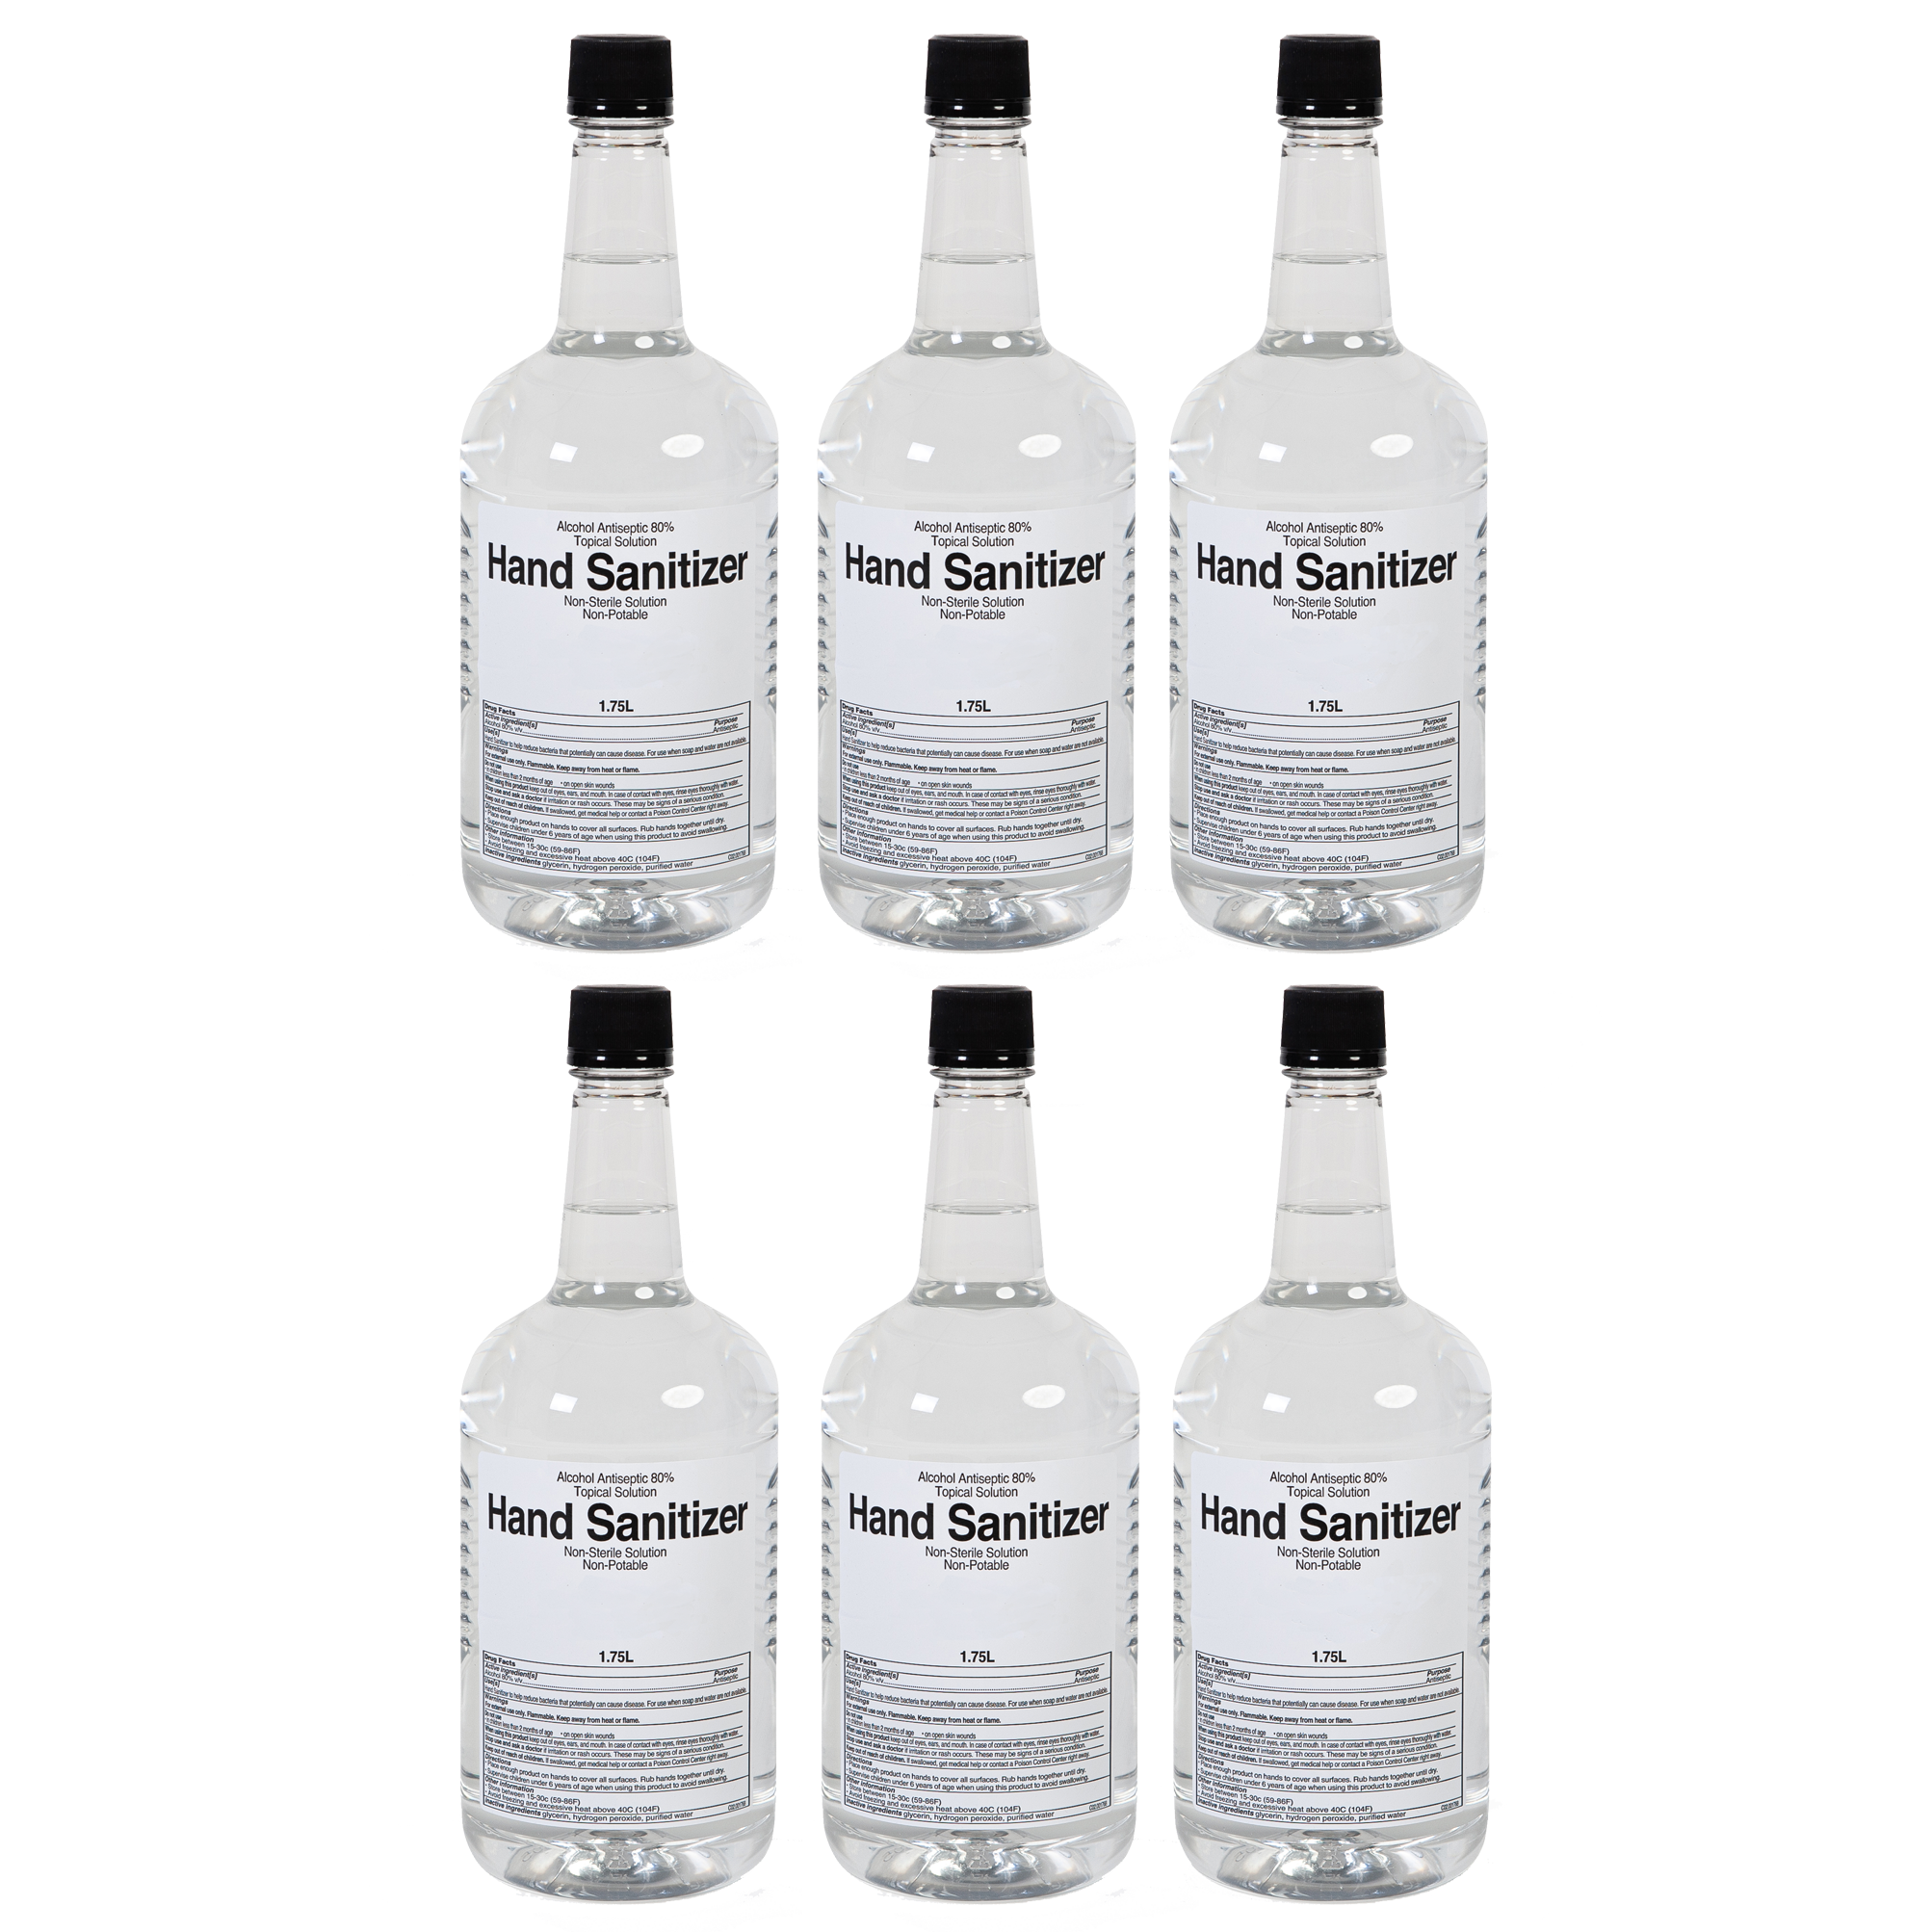 Case of 6 Bottles of Sazerac Company Hand Sanitizer with 2 Pumps.  The bottles are 1.75 Liters (59 oz) Each